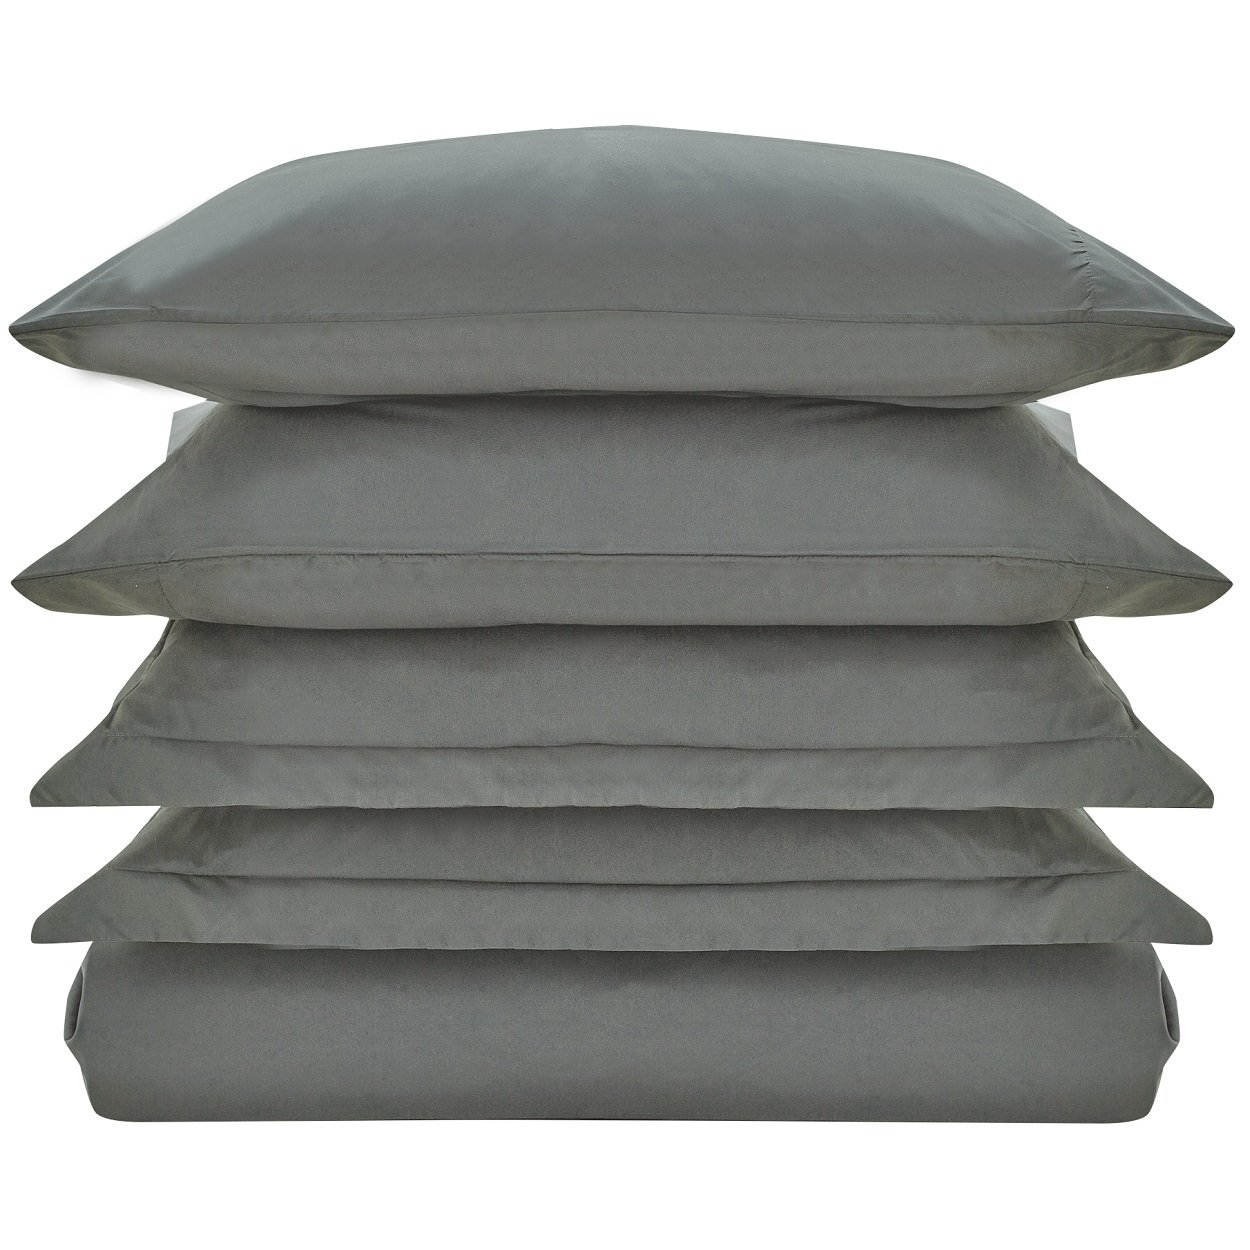 Mellanni Duvet Cover Set Gray - Double Brushed Microfiber 1800 Bedding Collection with Extra Pillowcase - Wrinkle, Fade, Stain Resistant - Hypoallergenic - 3 Piece (Twin/Twin XL, Gray) by Mellanni